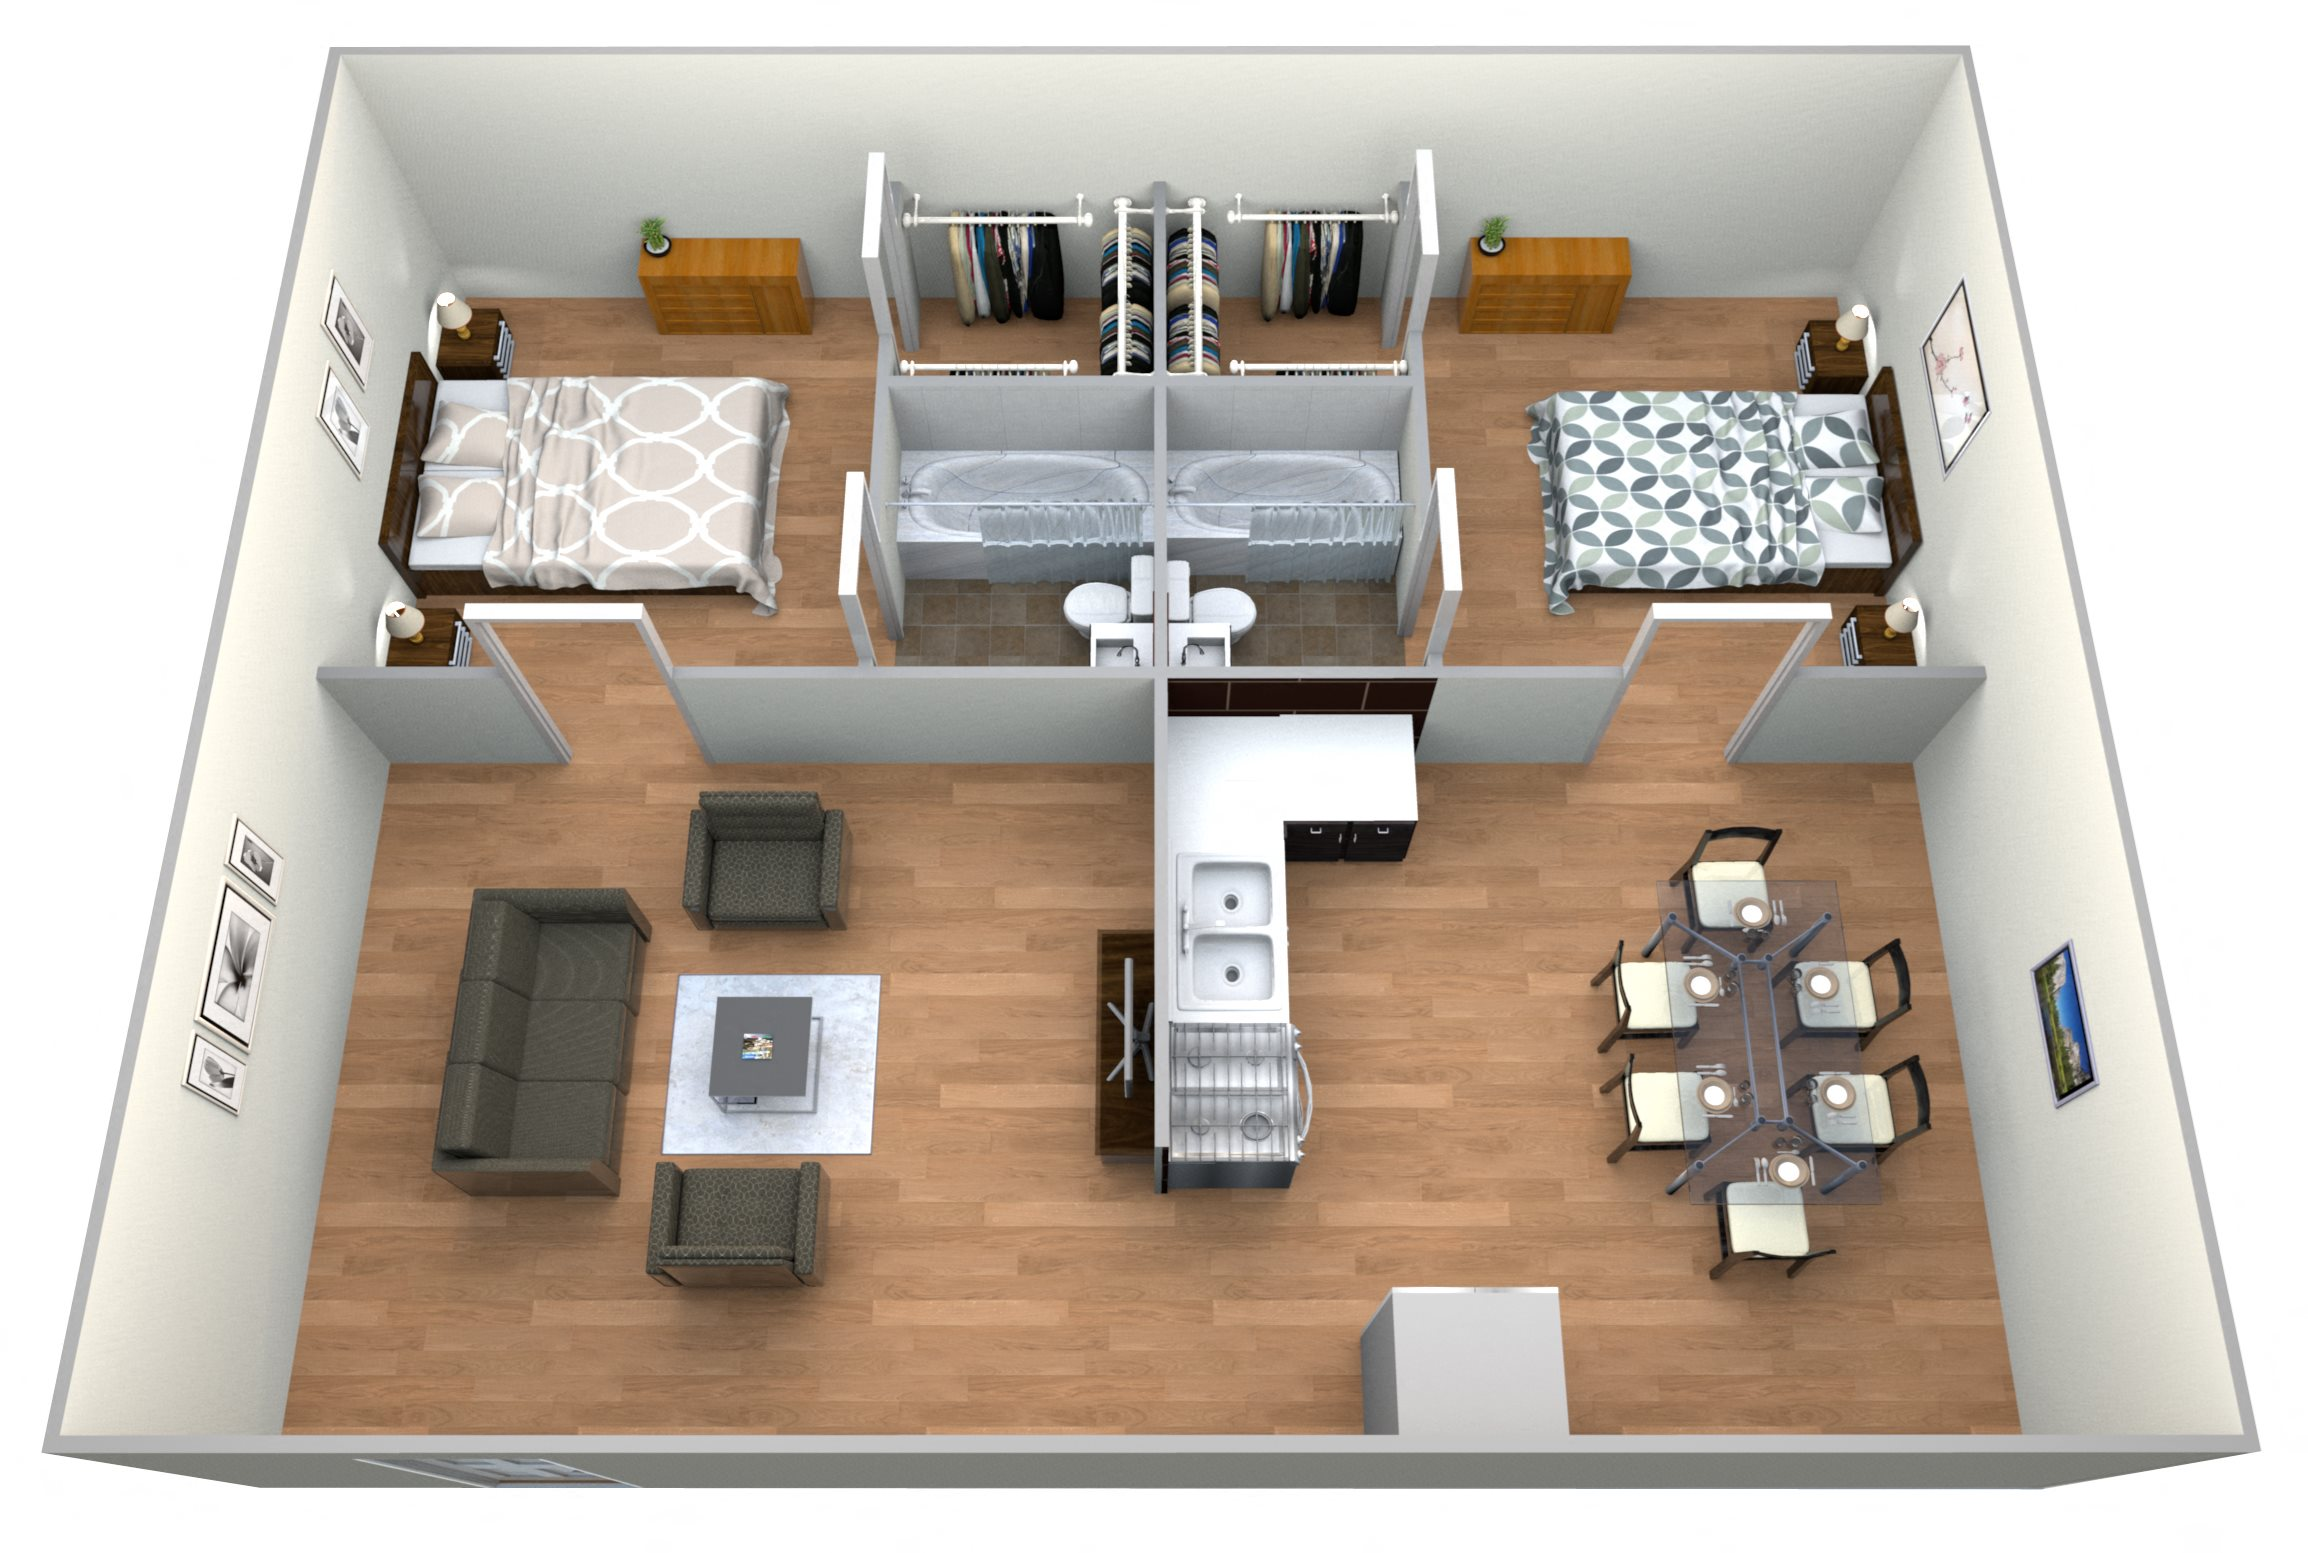 #6 Crisscross 2 Bedroom w/ 2 Baths Floor Plan 6